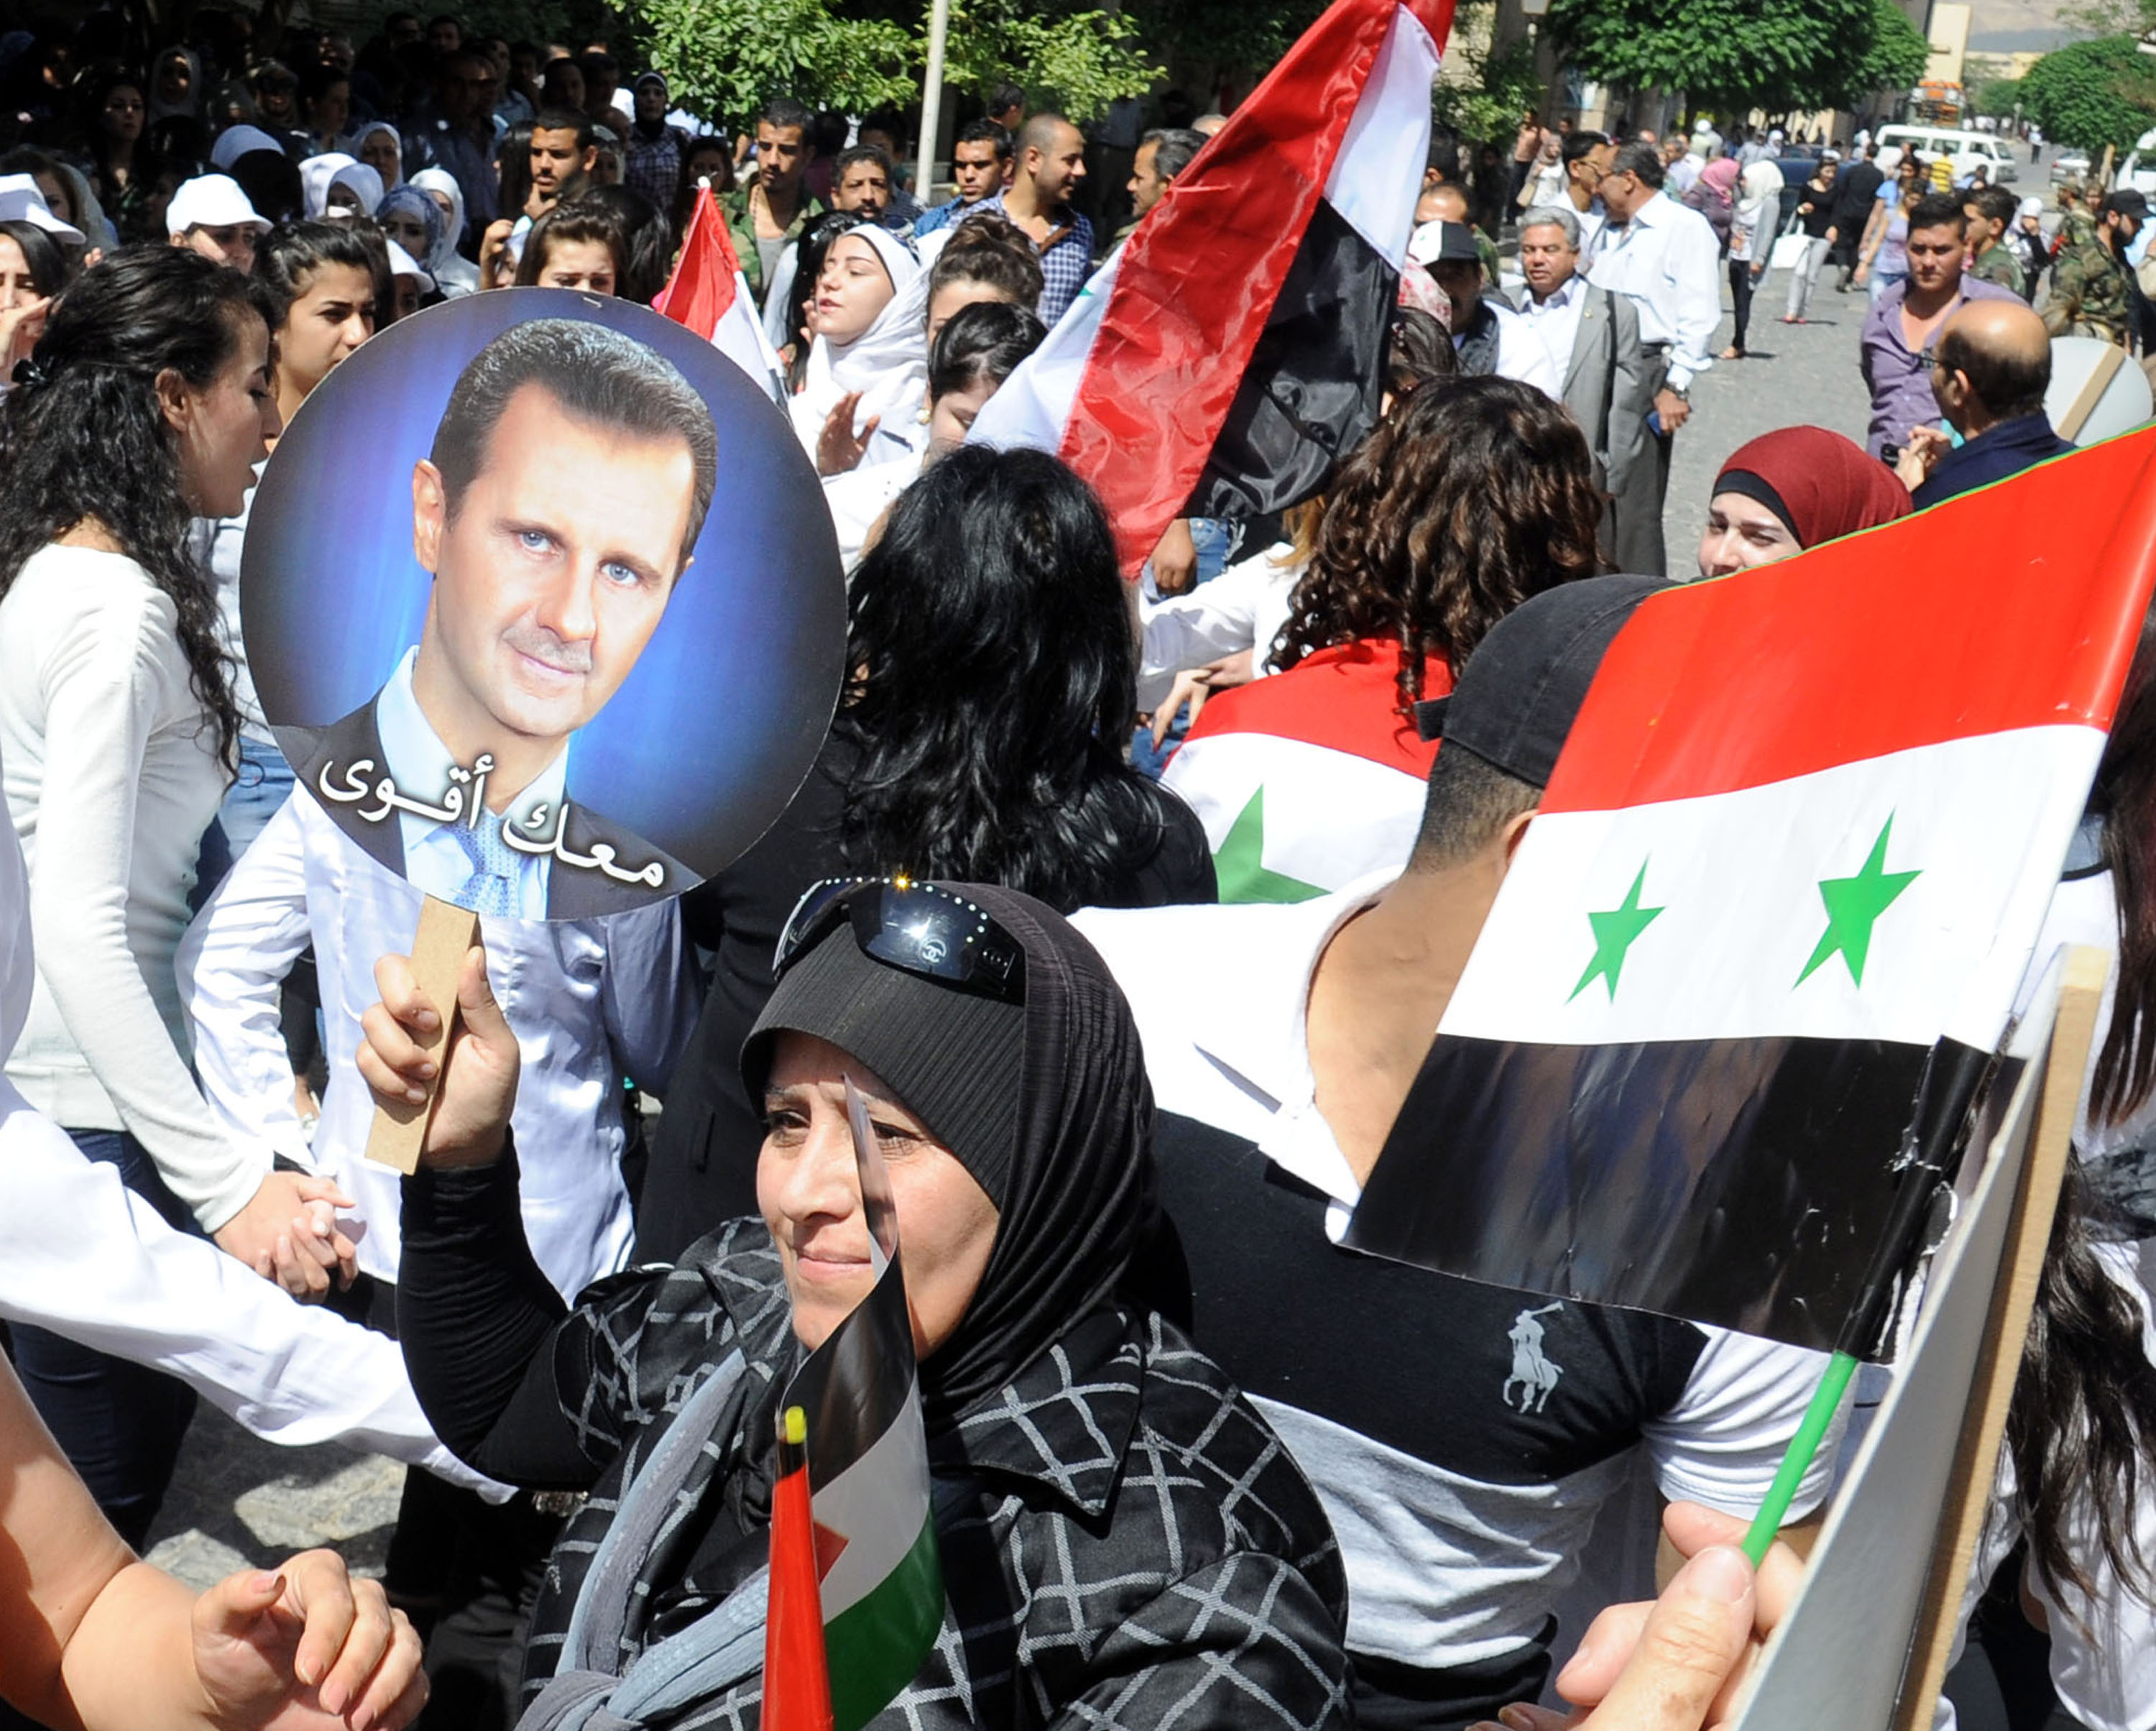 - Supporters of Syrian President Bashar al-Assad take part in a rally to celebrate the anniversary of Assad's reelection in Damascus on June 3, 2015. Assad won a third seven-year term in the presidential election last June, which was the first multi-candidate poll in Syria's modern history.